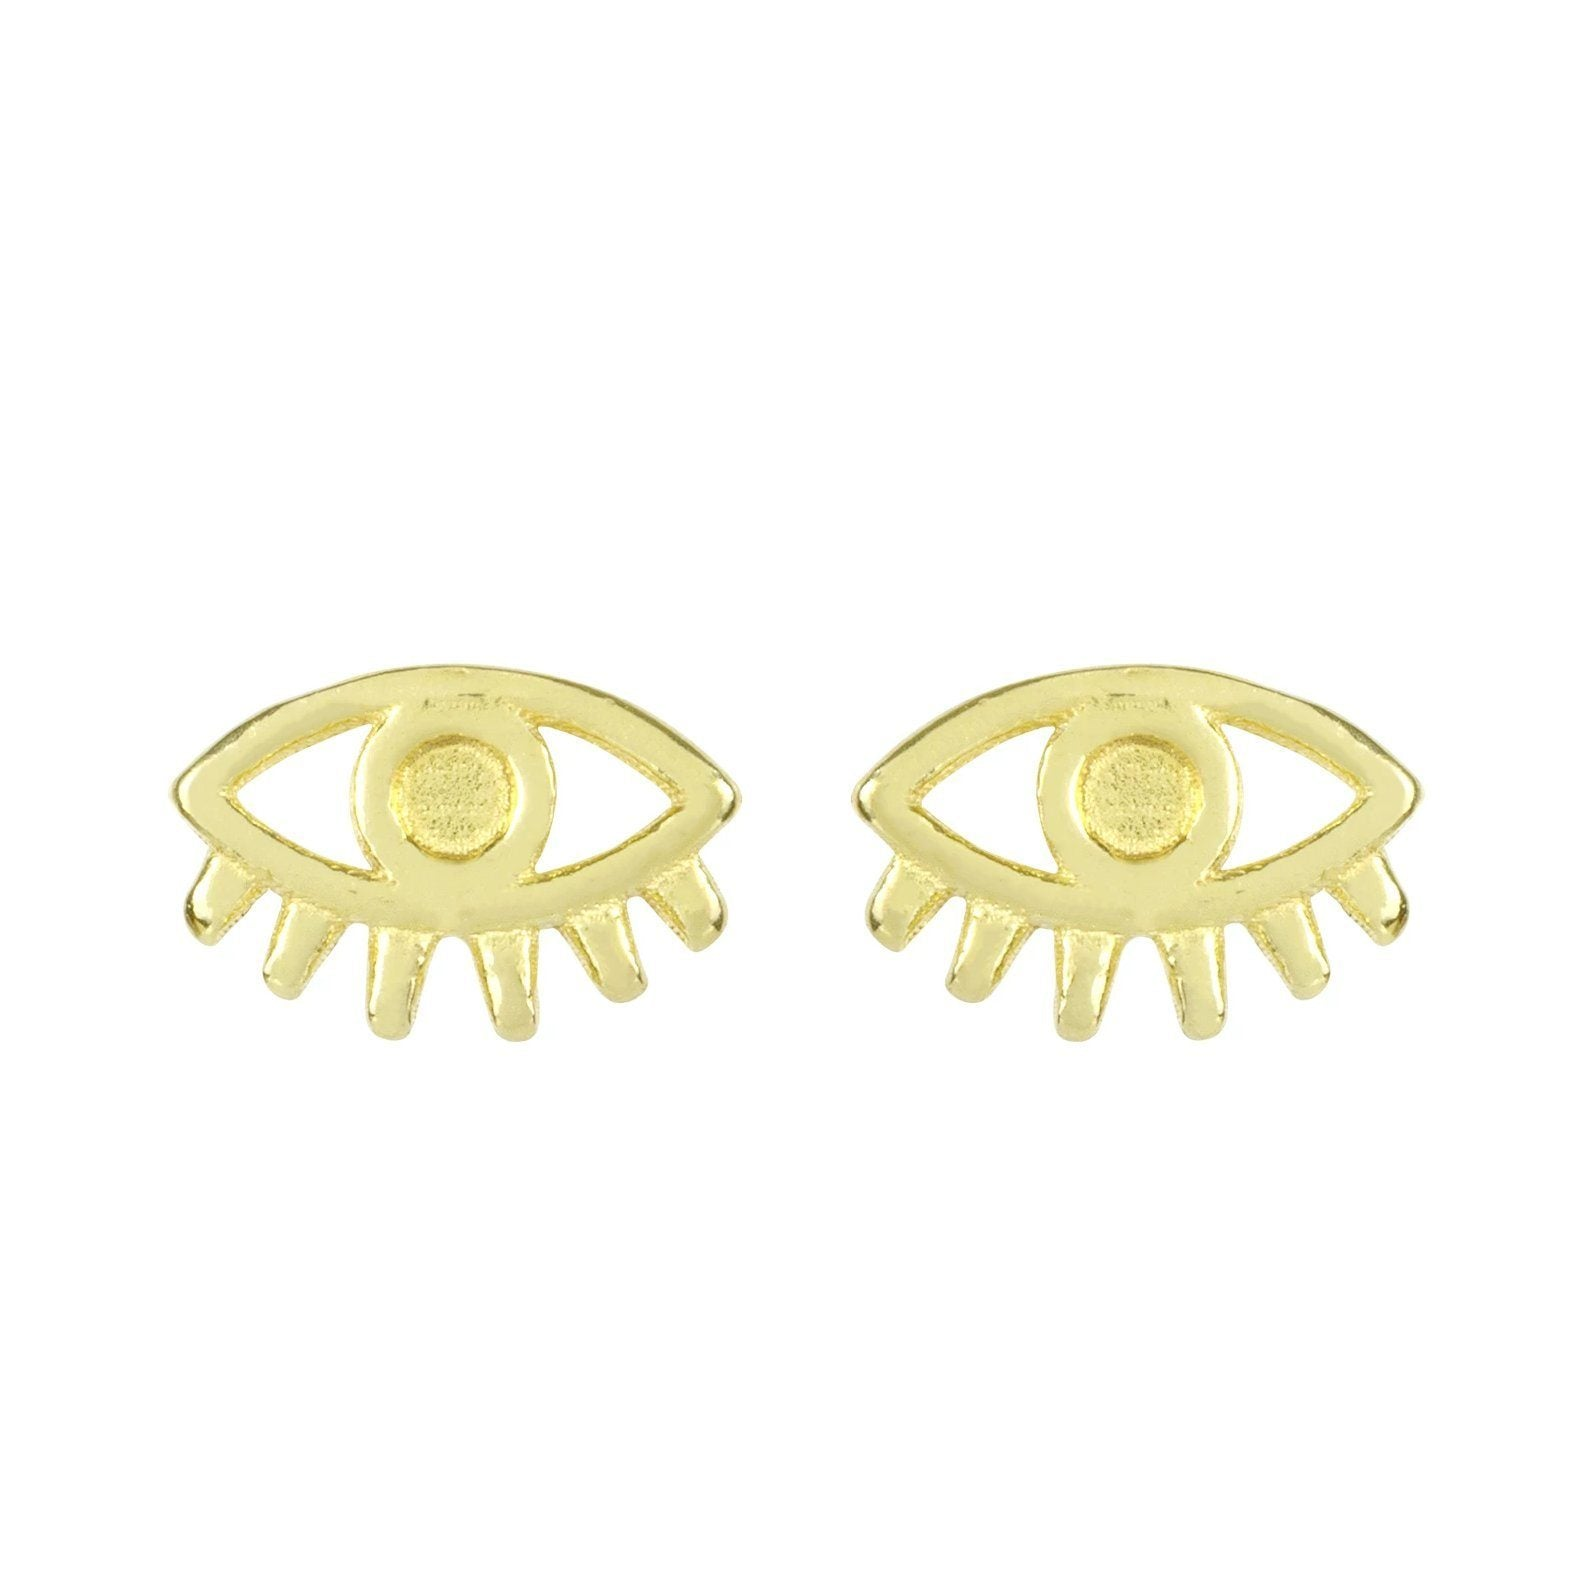 Up close image of the gold Evil Eye Studs against a white background.